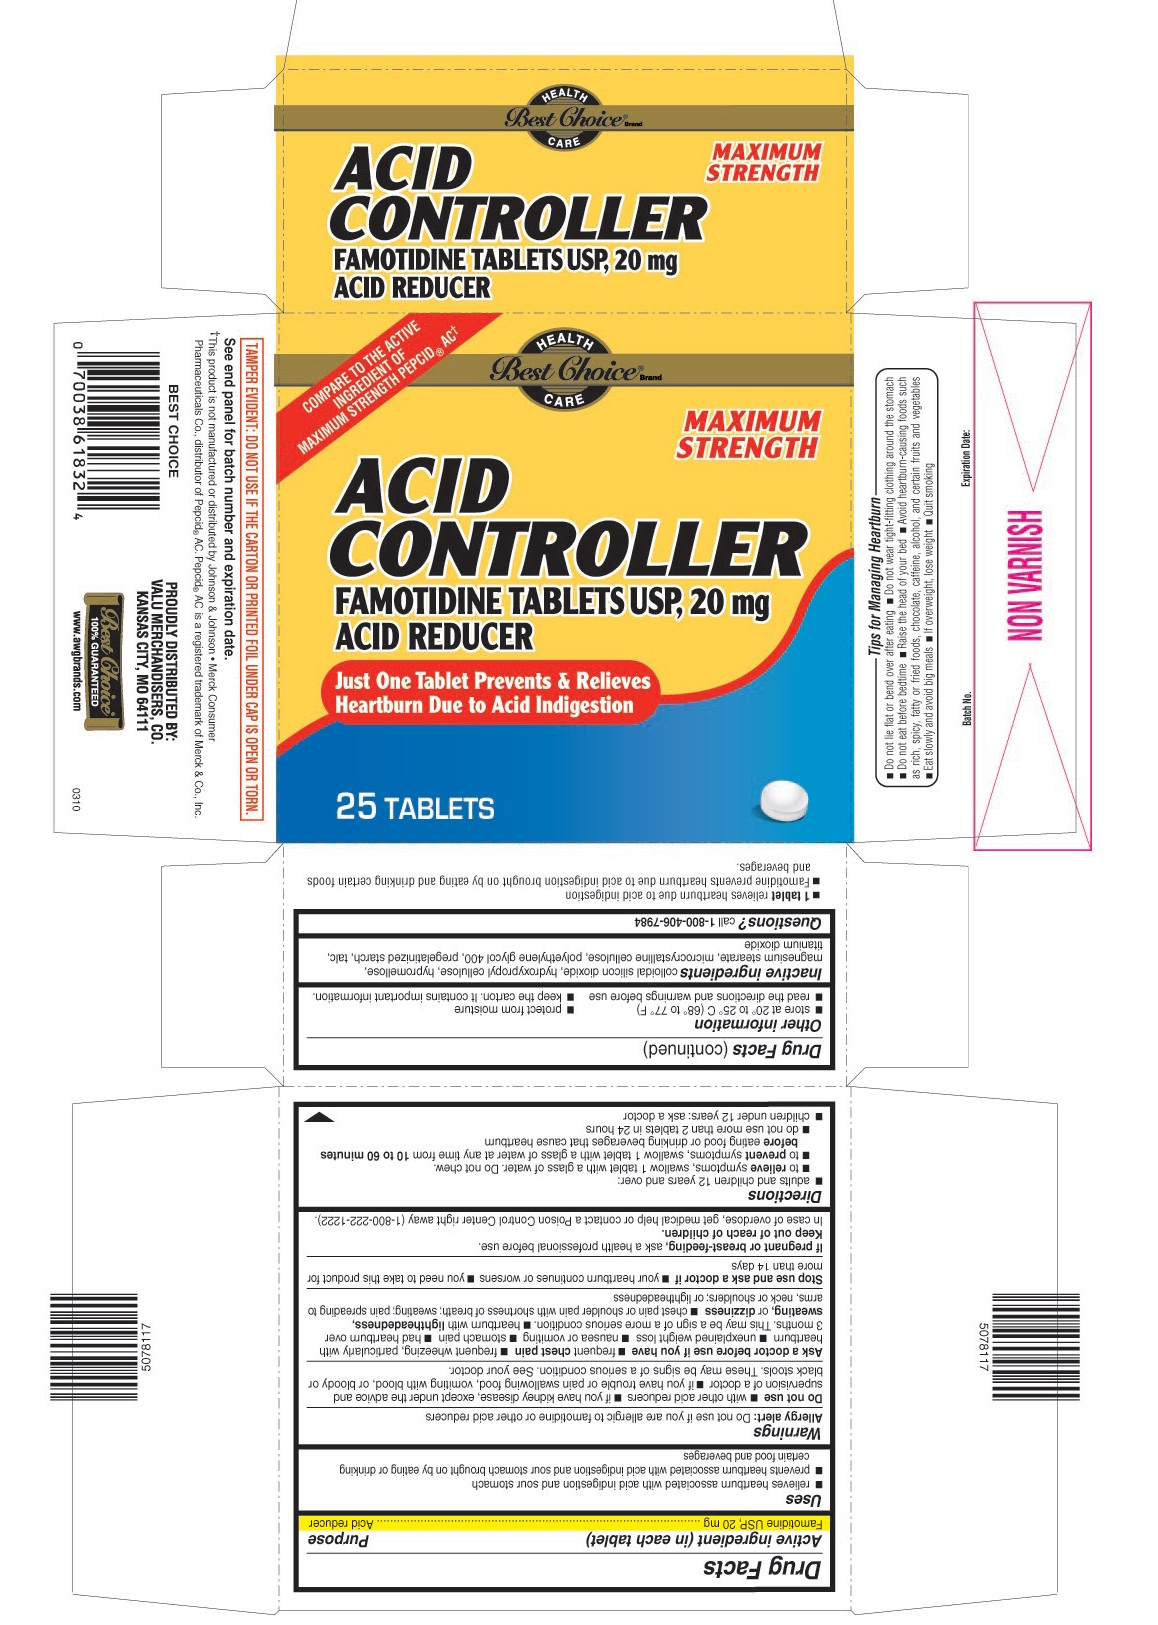 This is the 25 count bottle carton label for Best Choice Famotidine tablets USP,  20 mg.